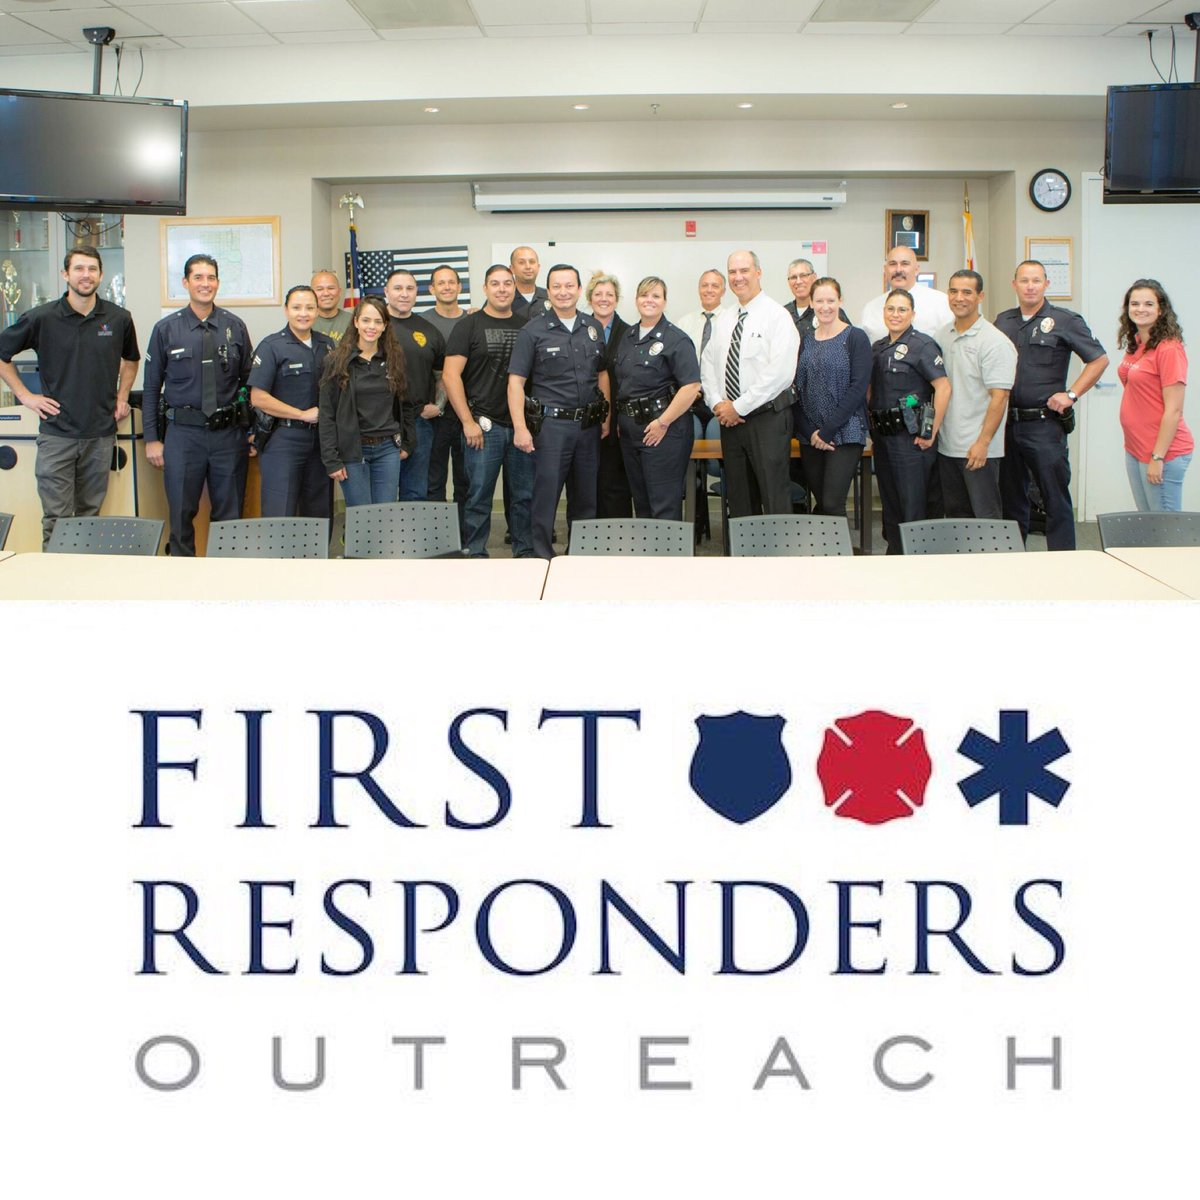 To learn more or to help support our #FirstResponders Outreach program, visit:  https://www. garysinisefoundation.org/programs/first -responders-outreach &nbsp; … <br>http://pic.twitter.com/eKuYNcAtba